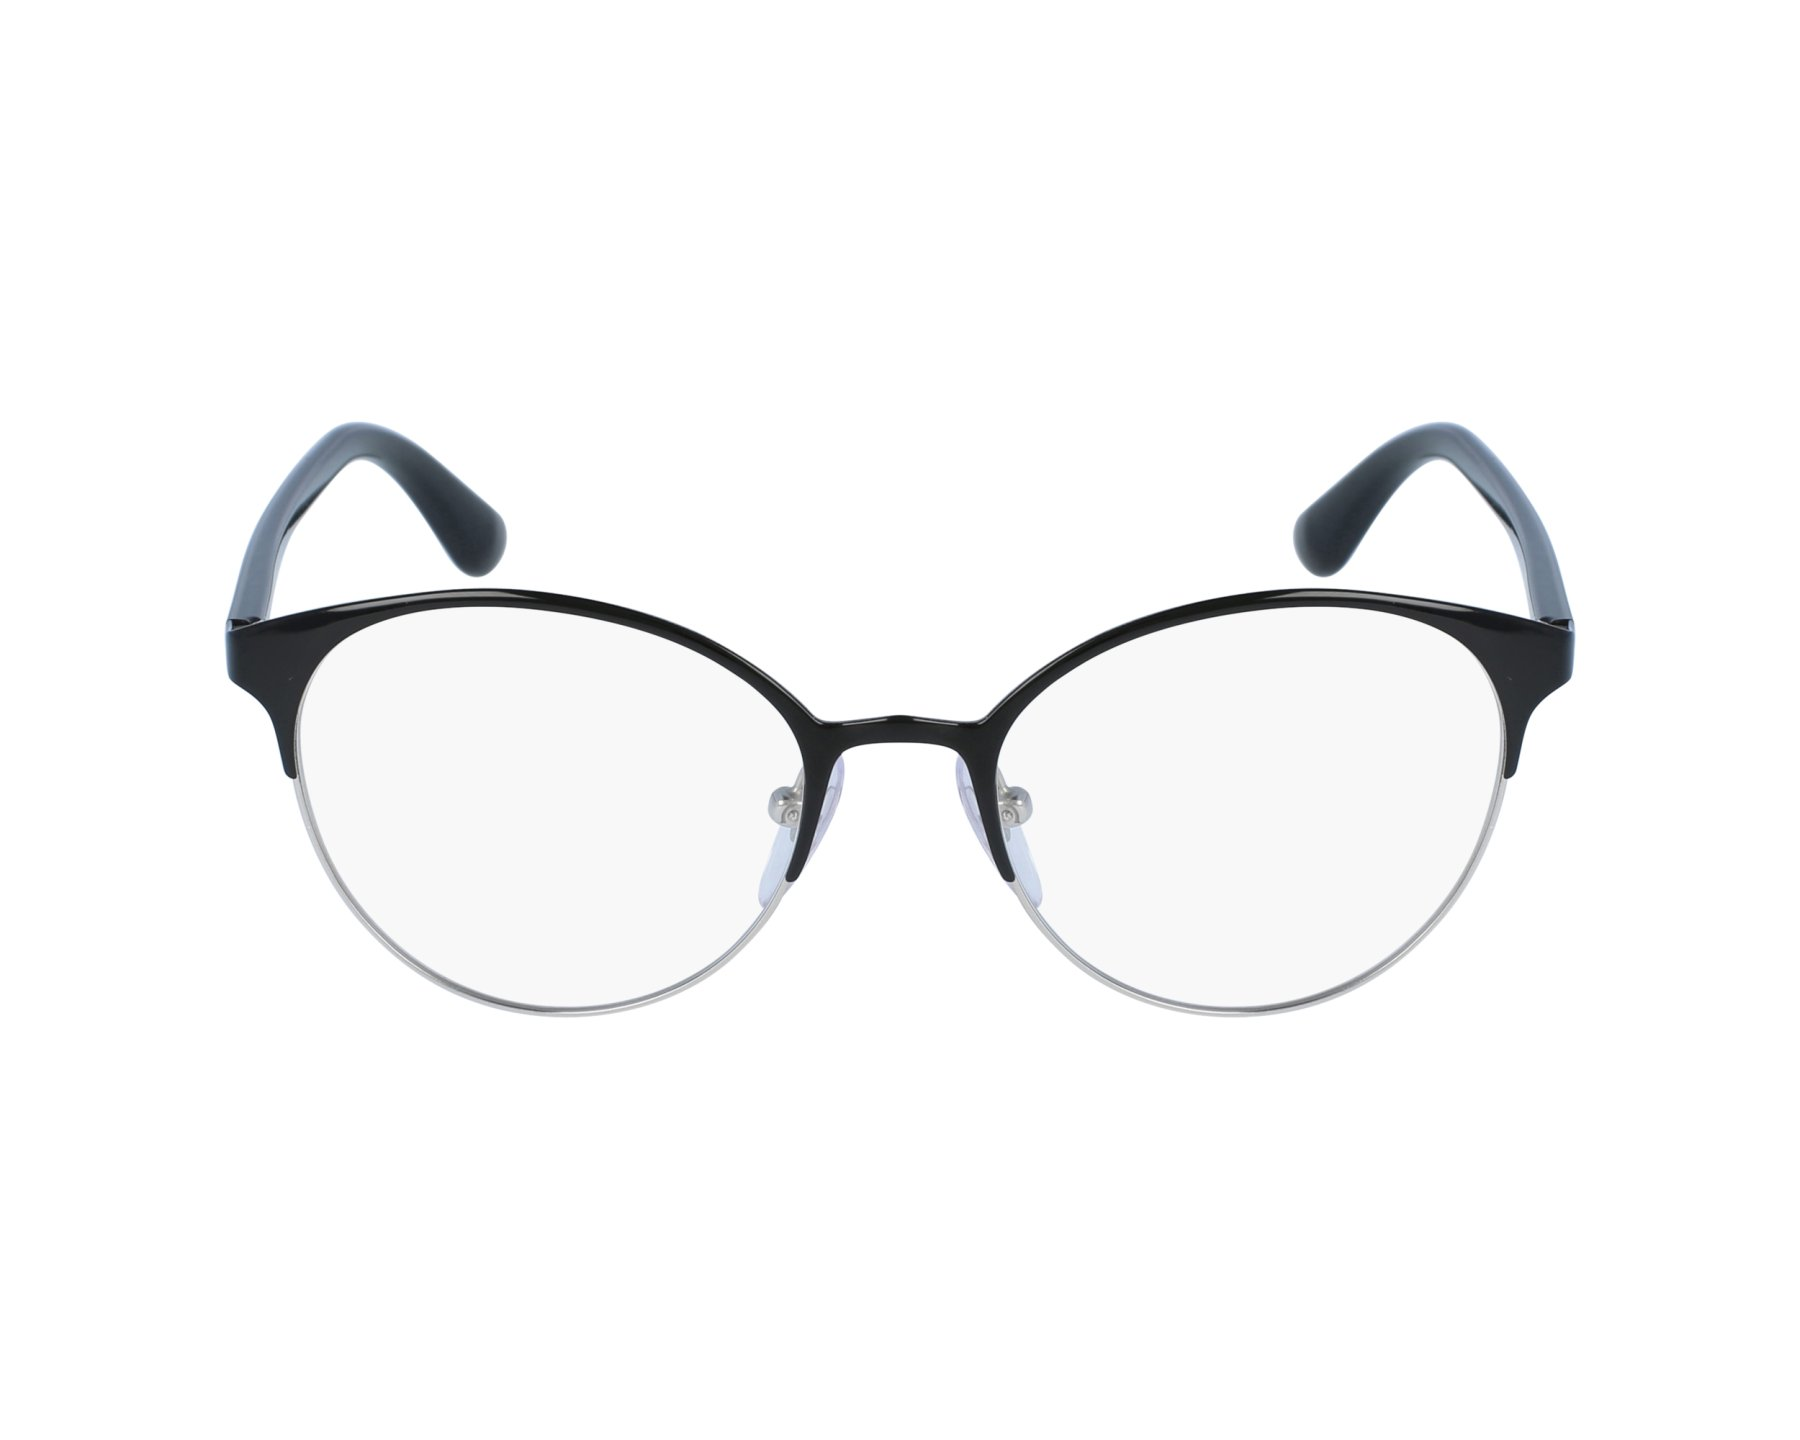 17b385807a4 eyeglasses Vogue VO-4011 352 49-18 Silver Black profile view